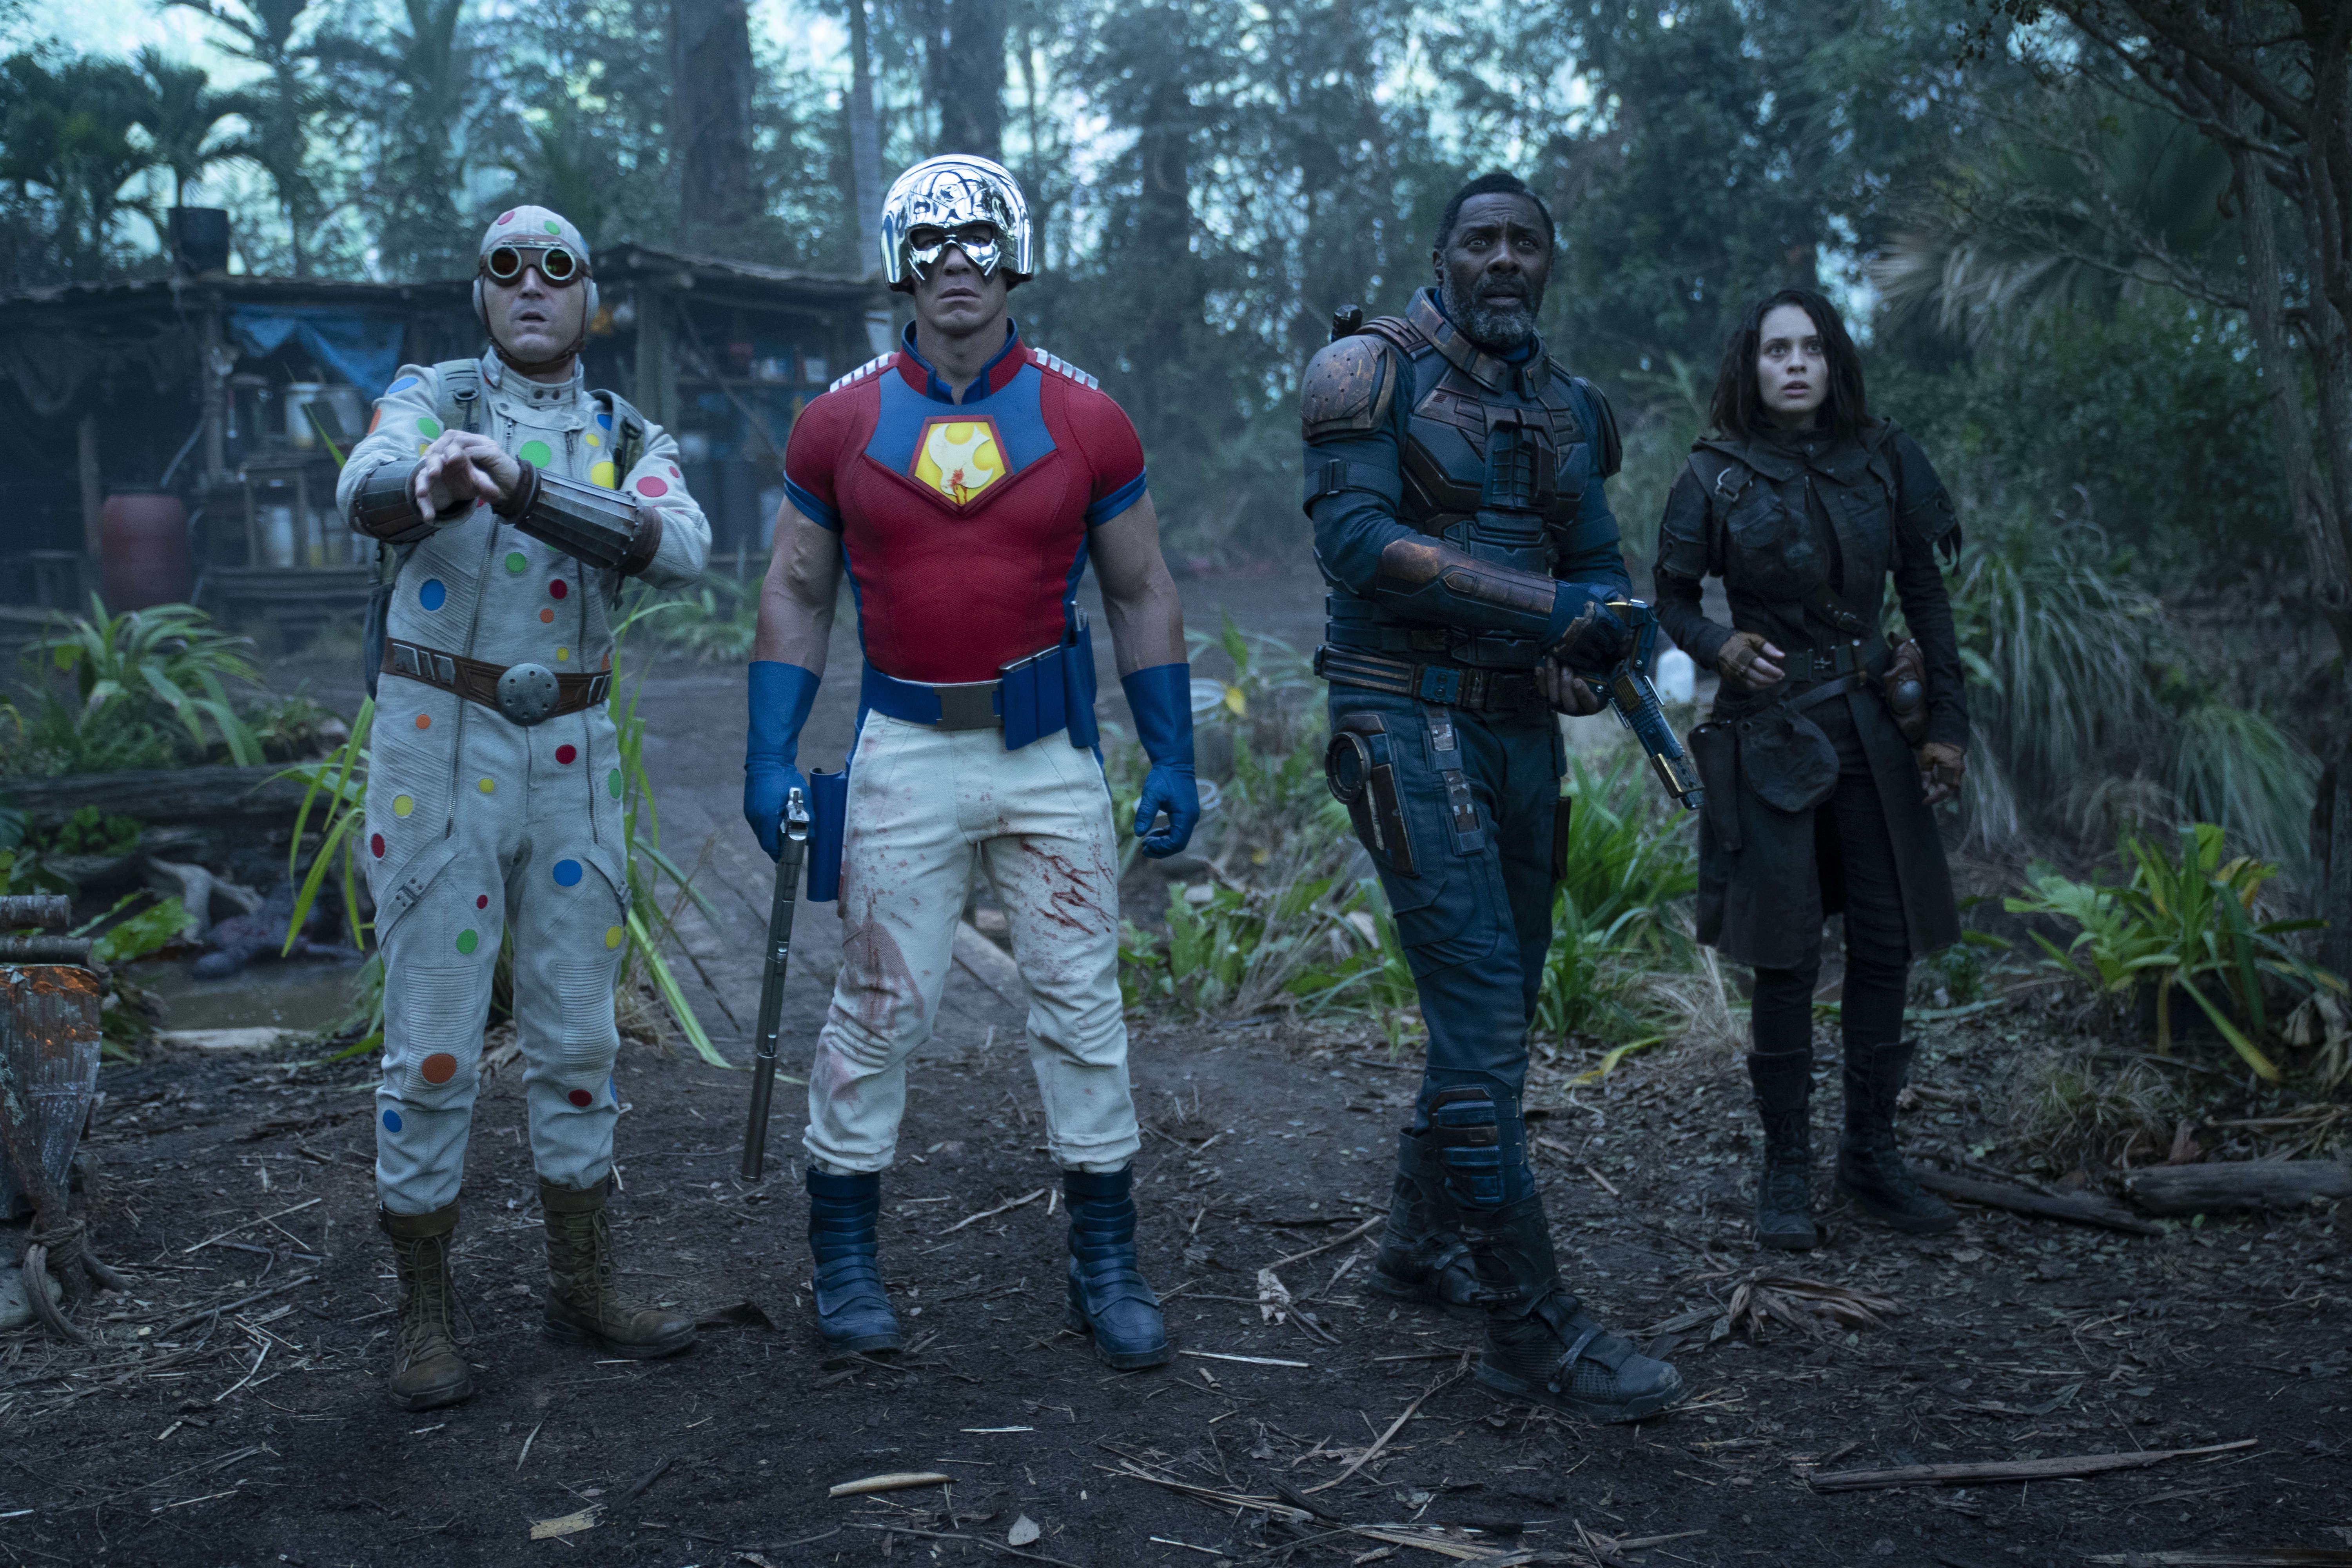 The Suicide Squad: What to know about James Gunn's DC Comics romp before it hits theaters